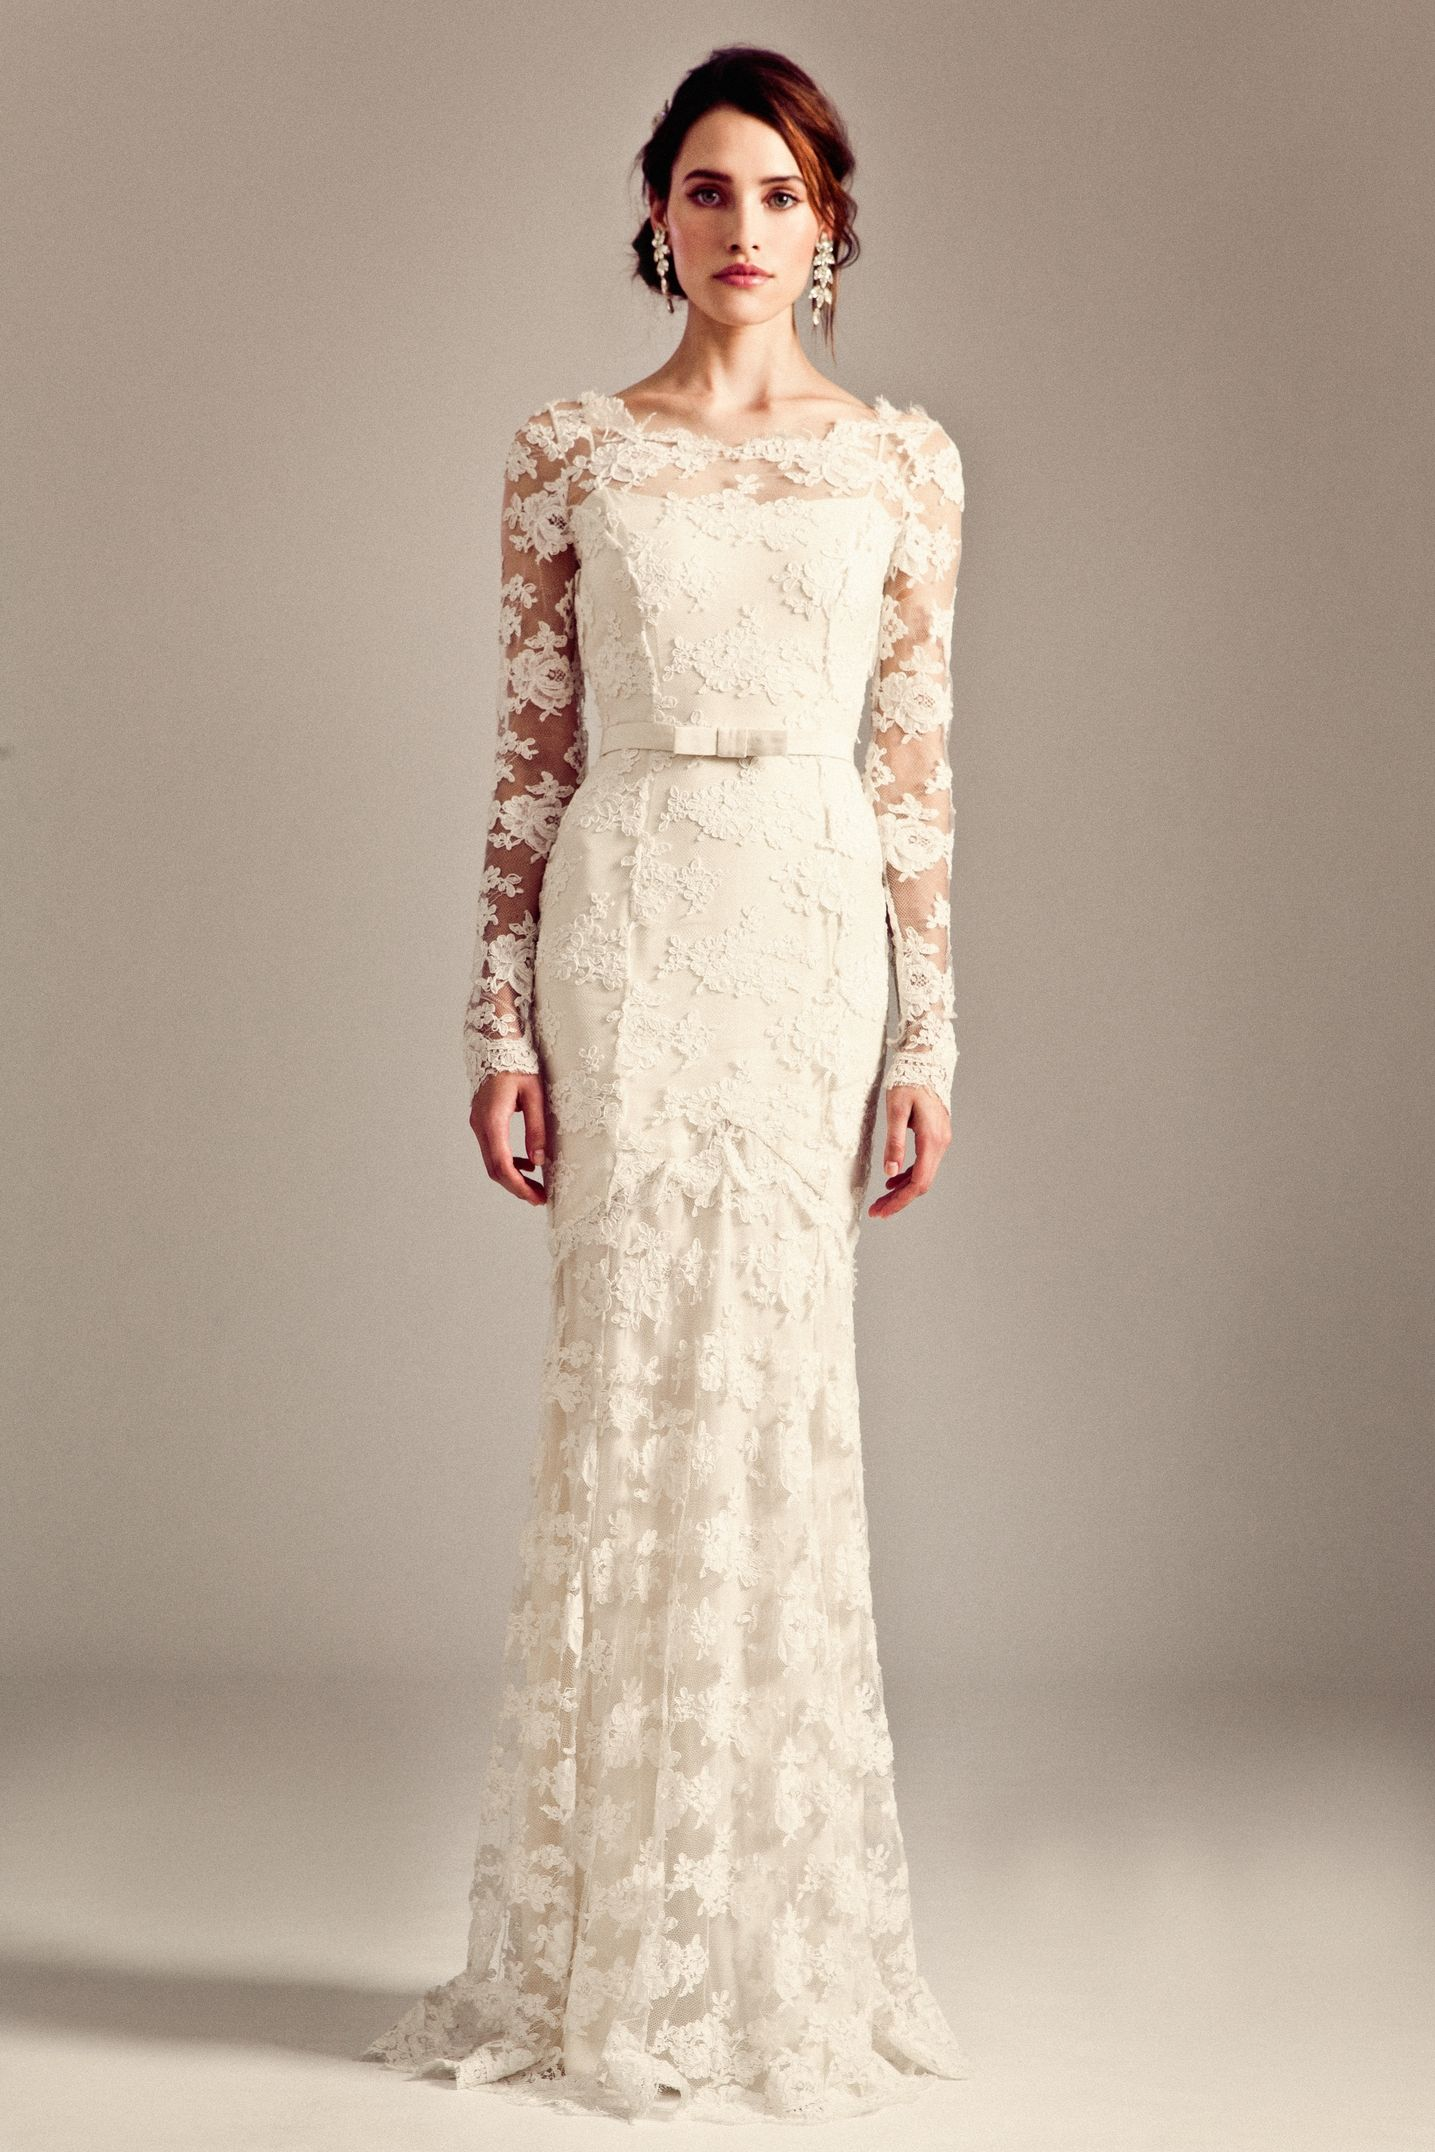 Florence Dress from the Temperley Bridal Iris Collection